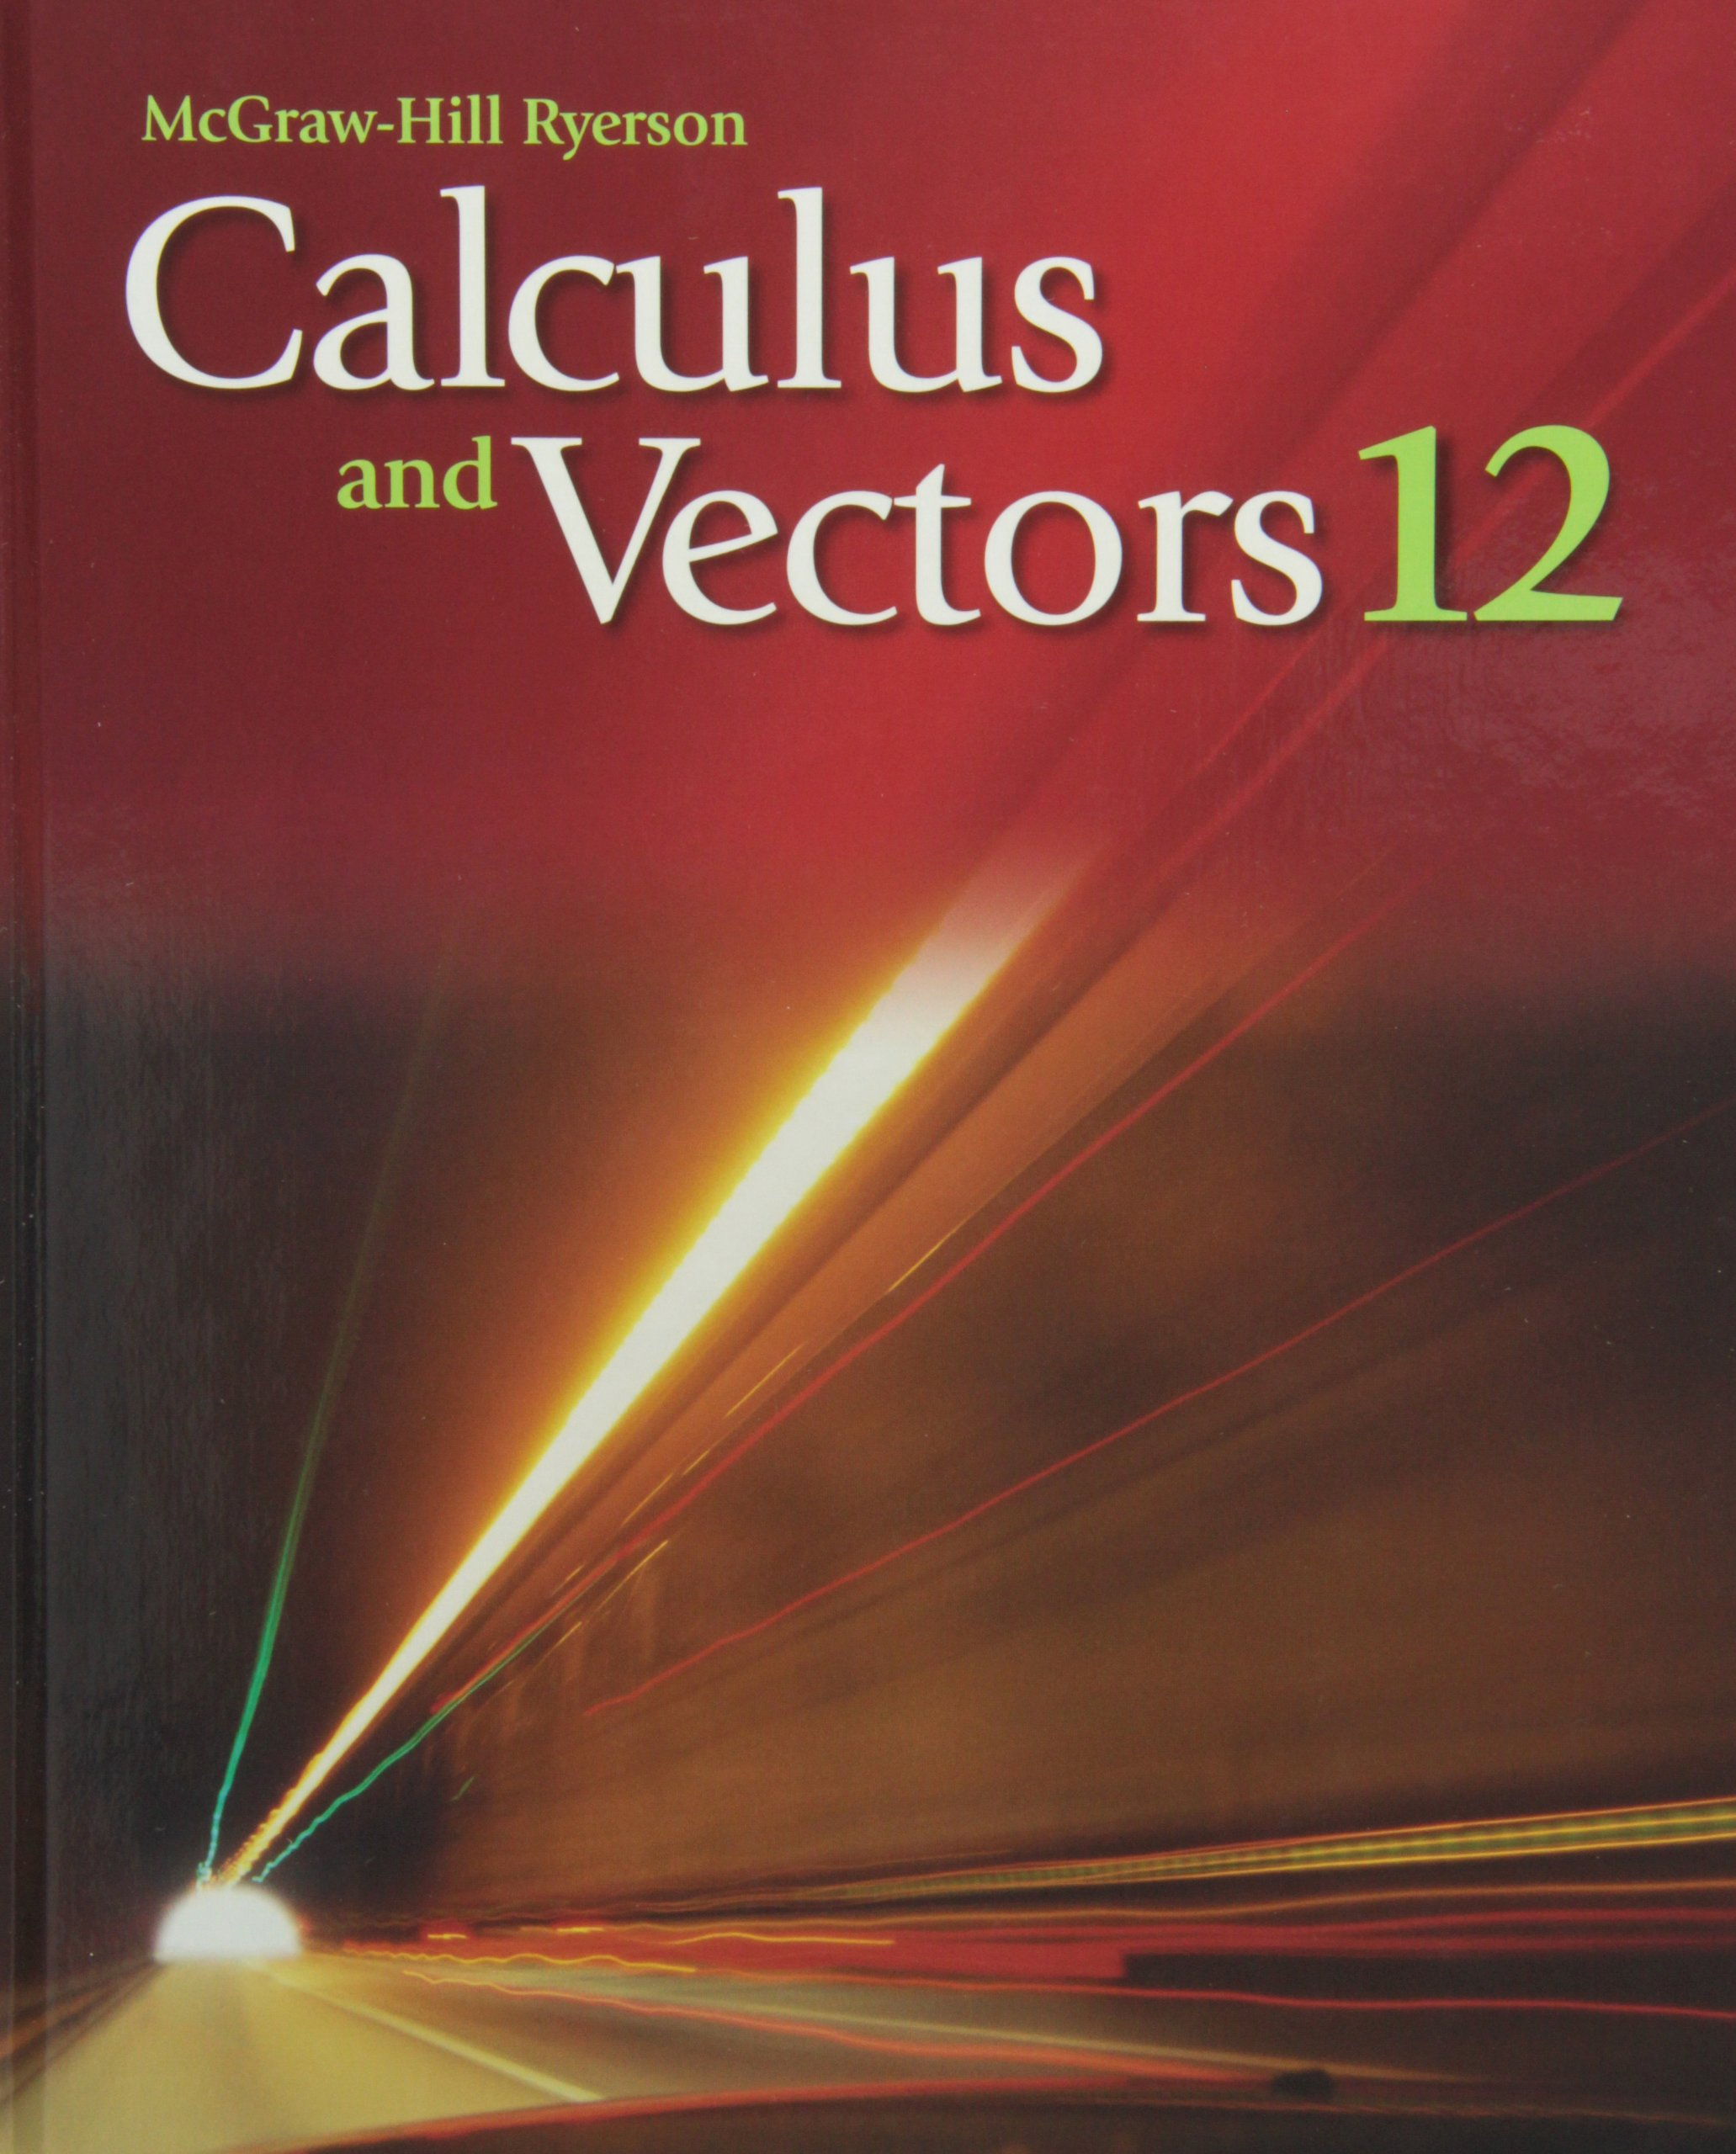 calculus and vectors 12 student edition bryce bates kirsten rh amazon ca Vector Research VT 300 Manual Car Vector